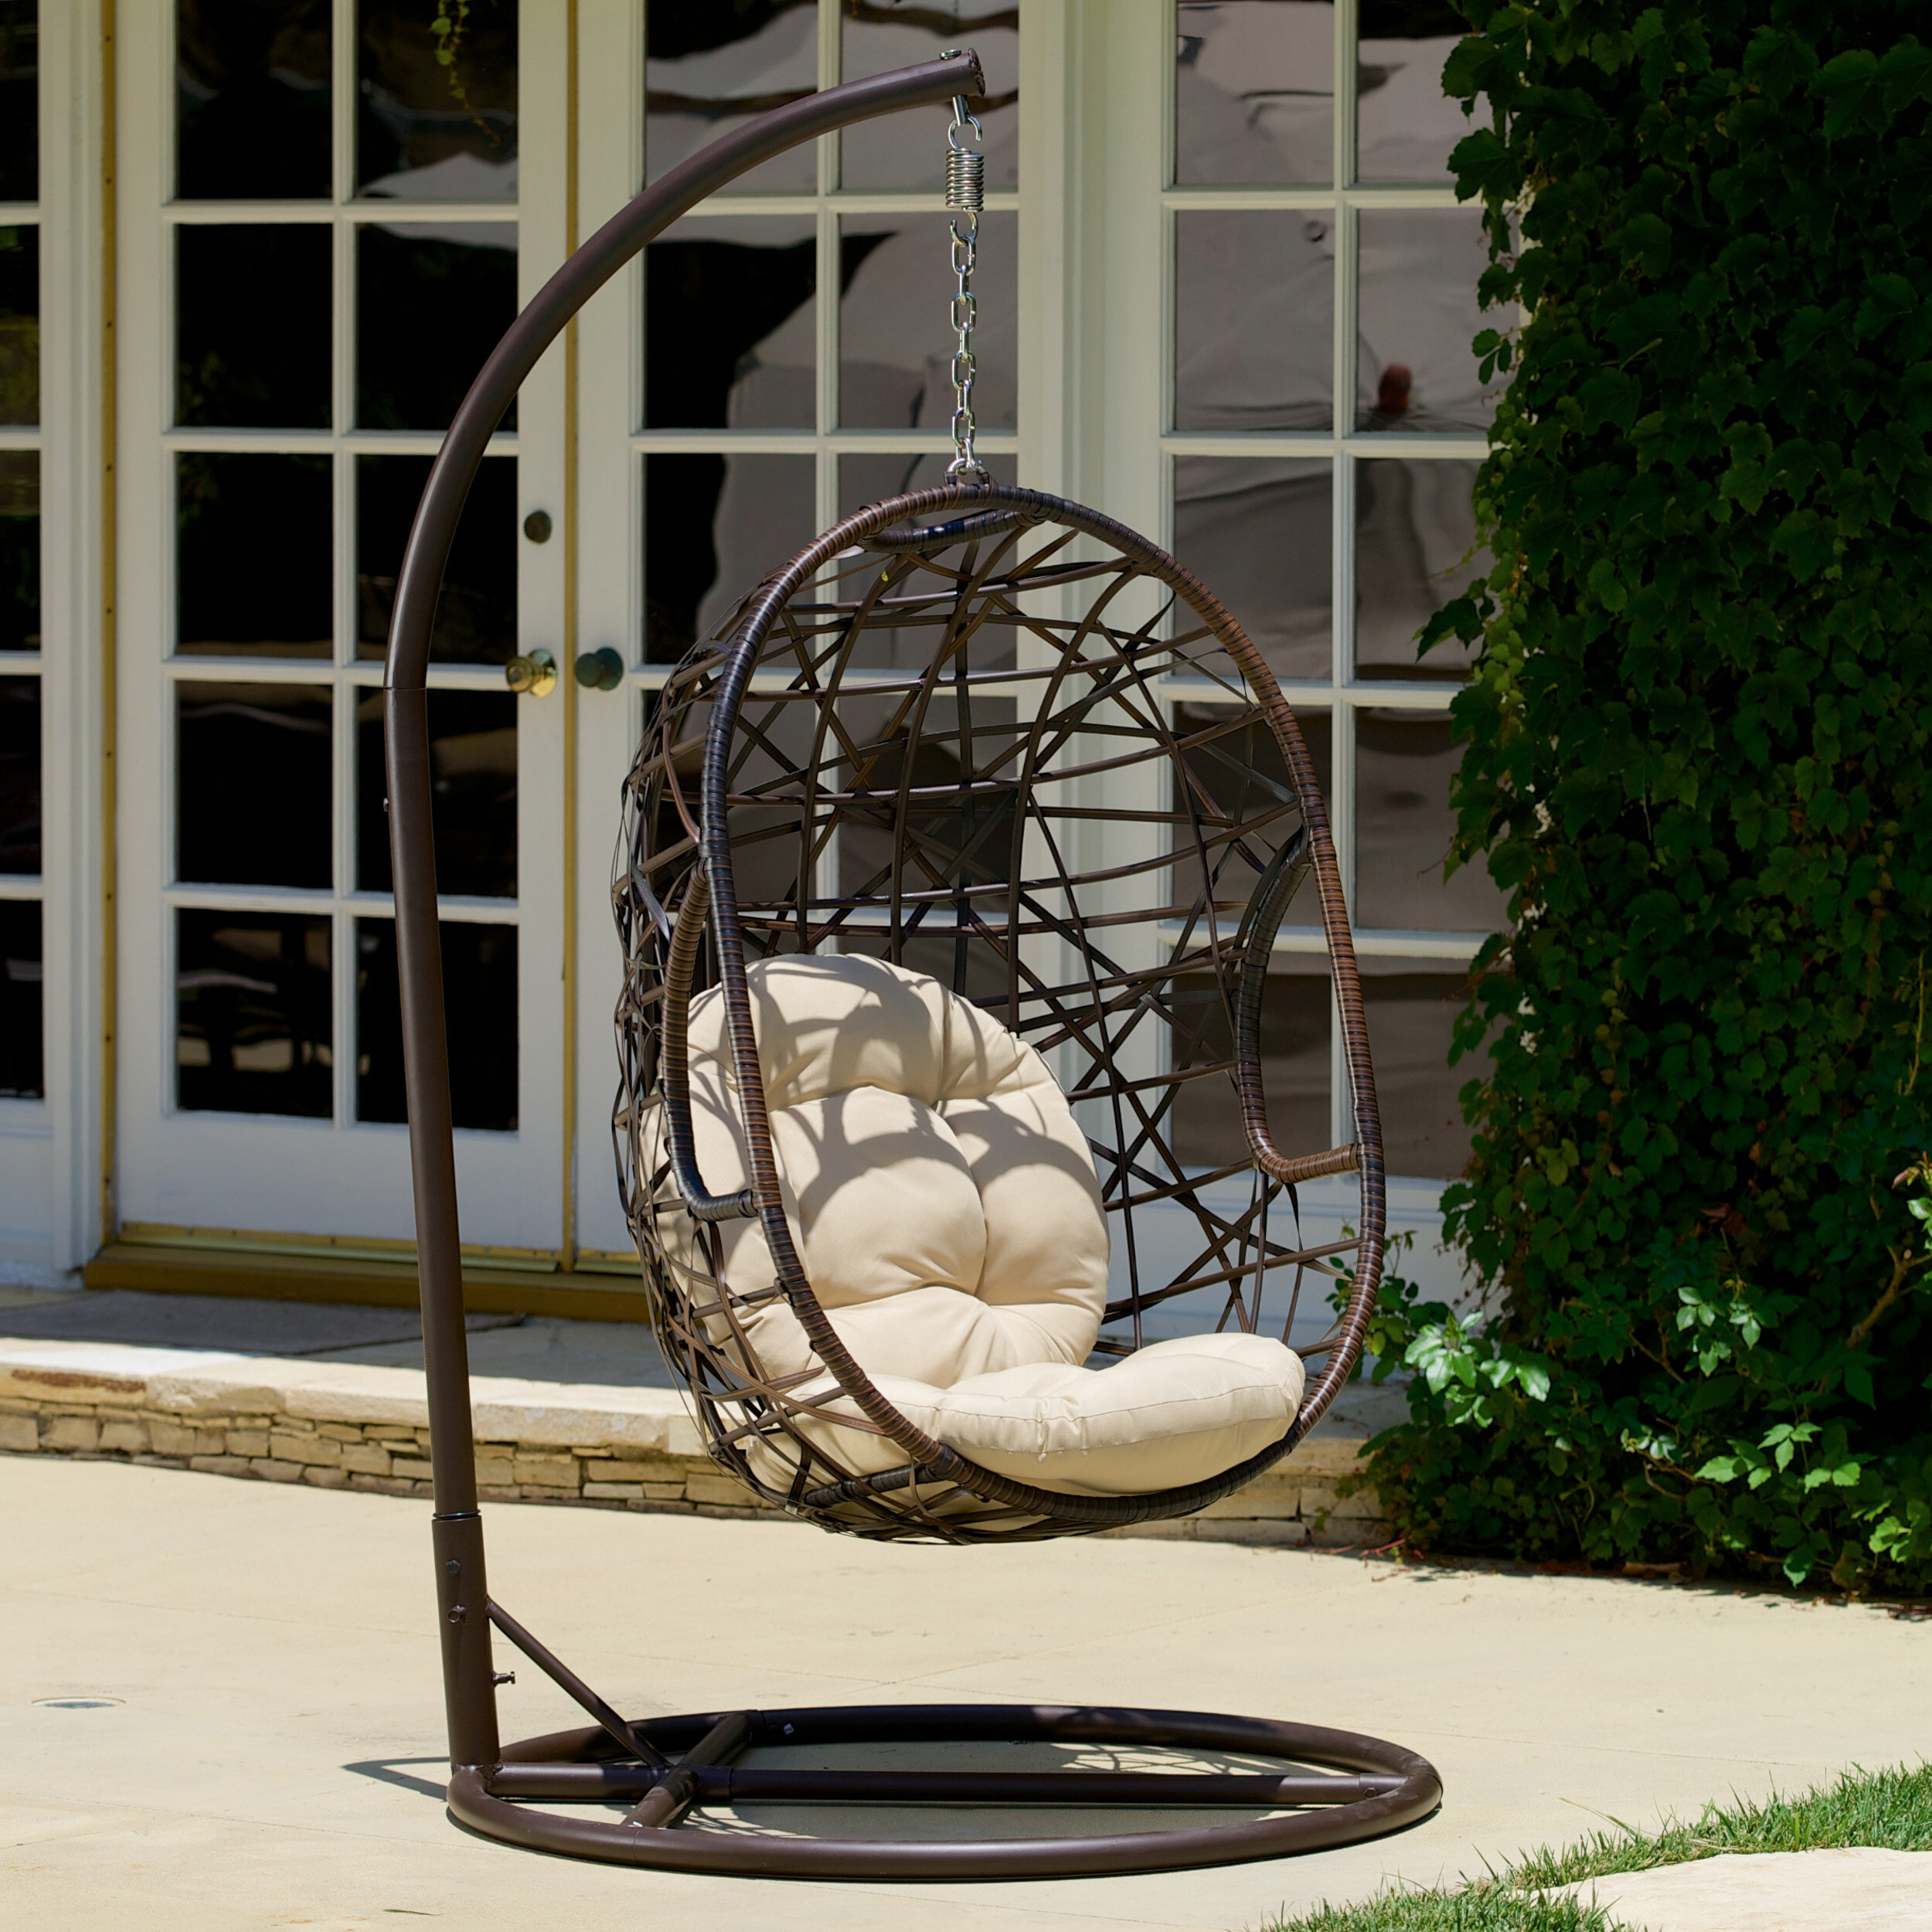 Charmant Adelia Egg Shaped Outdoor Swing Chair With Stand